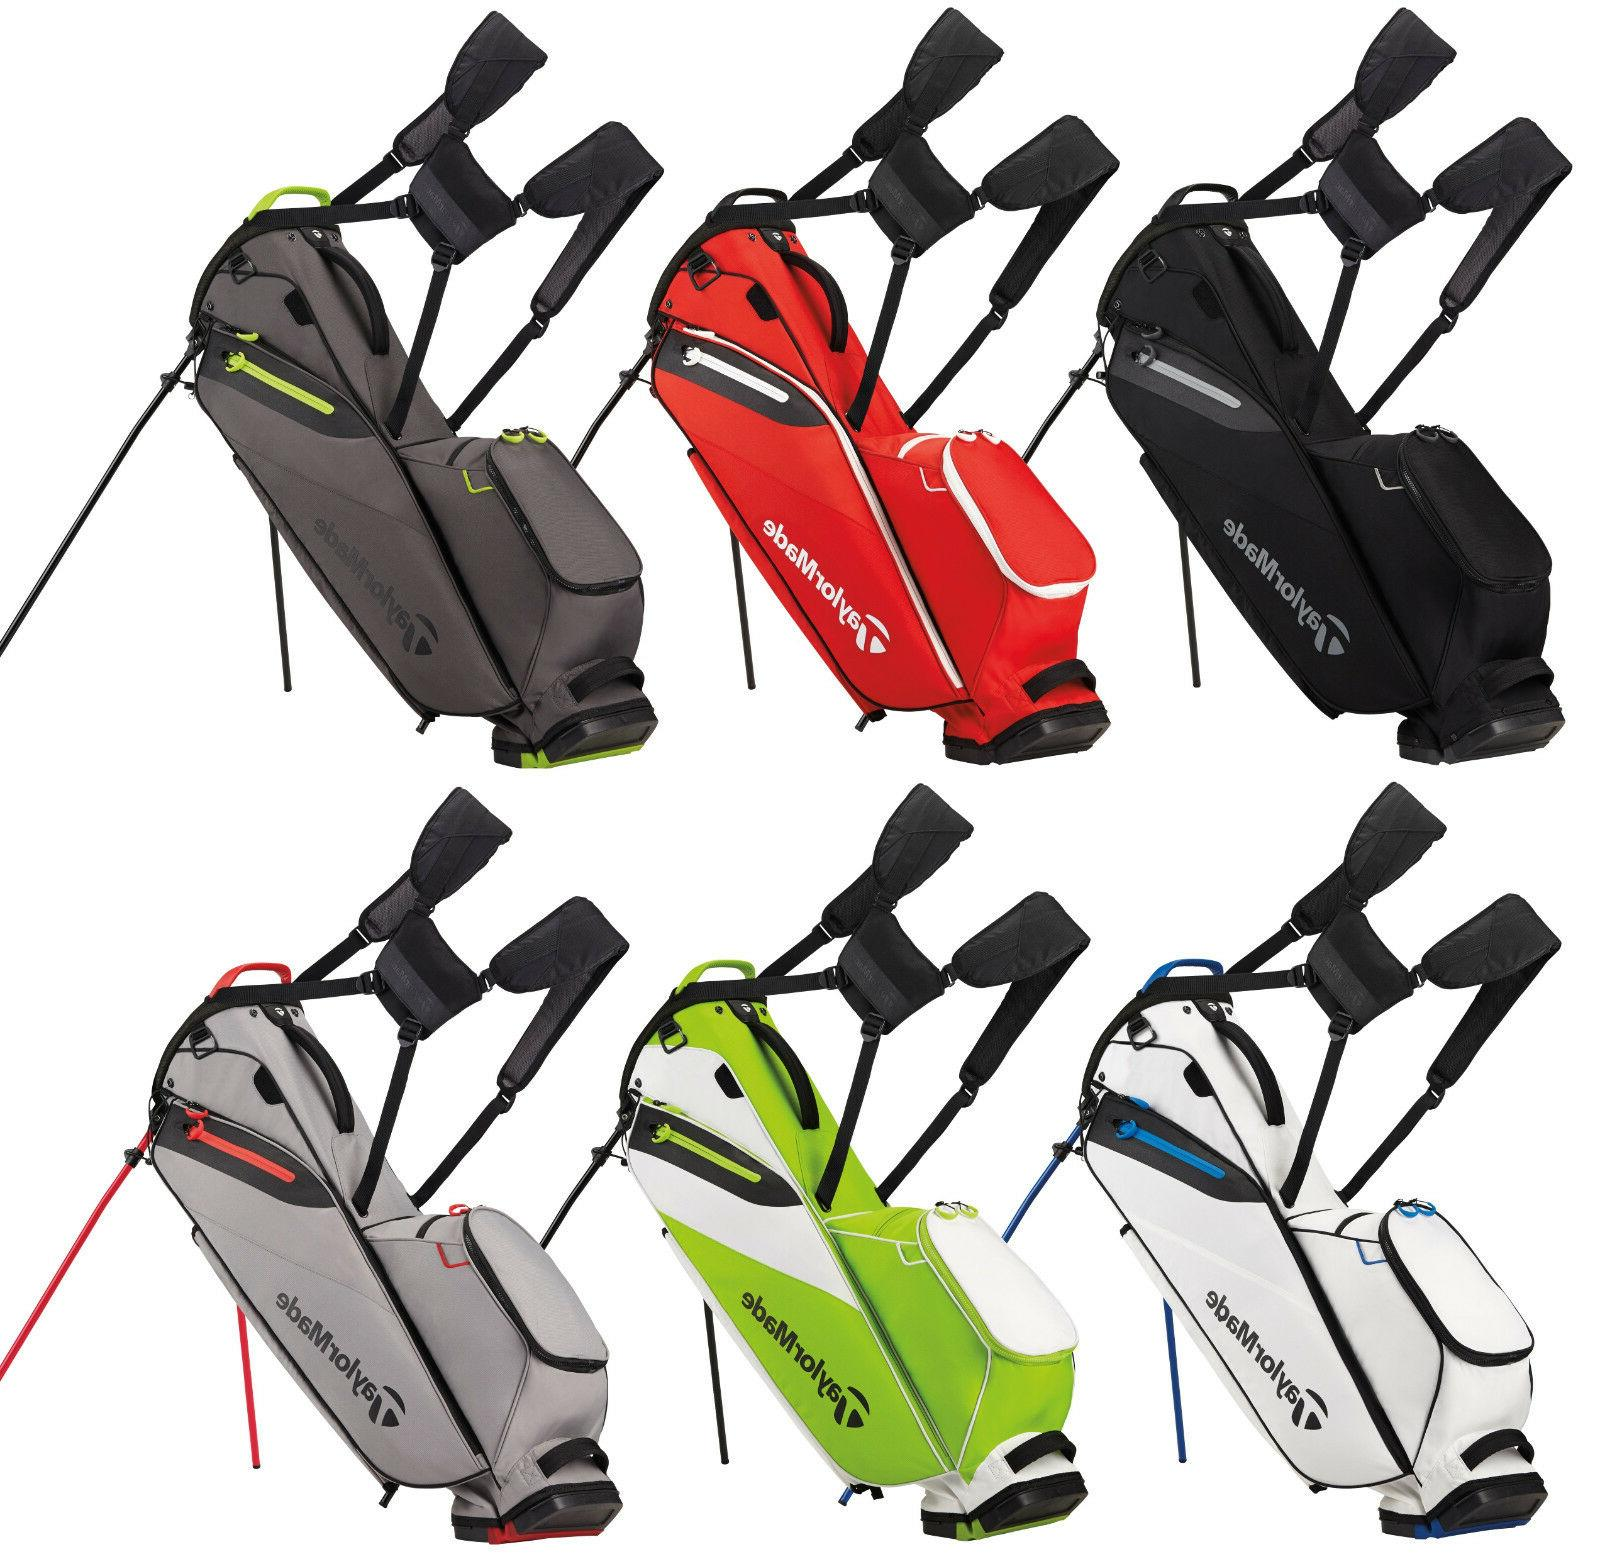 New 2017 TaylorMade Flextech Lite Stand Bag - Pick Your Colo